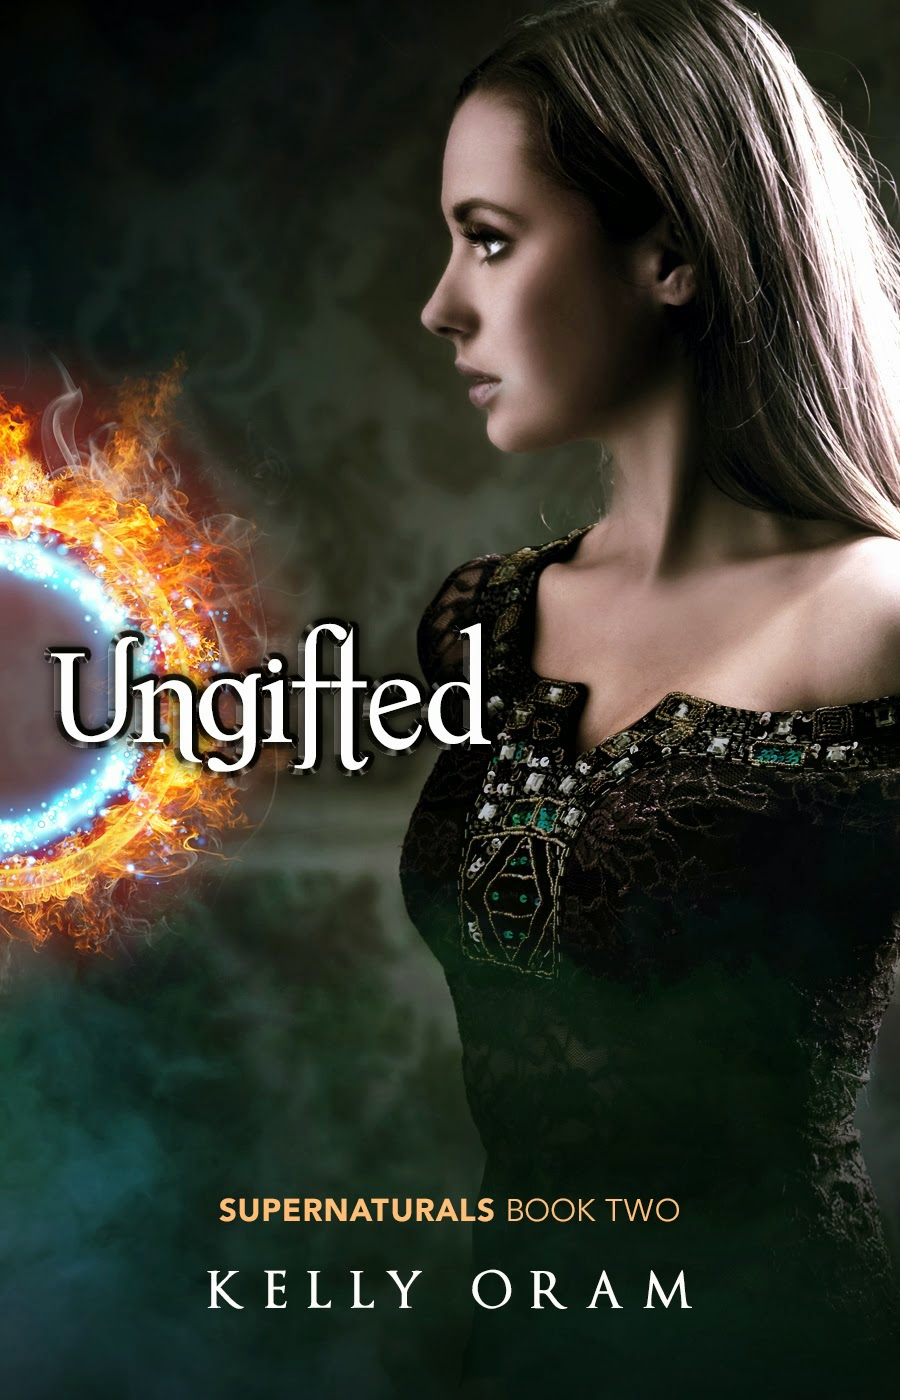 Ungifted by Kelly Oram